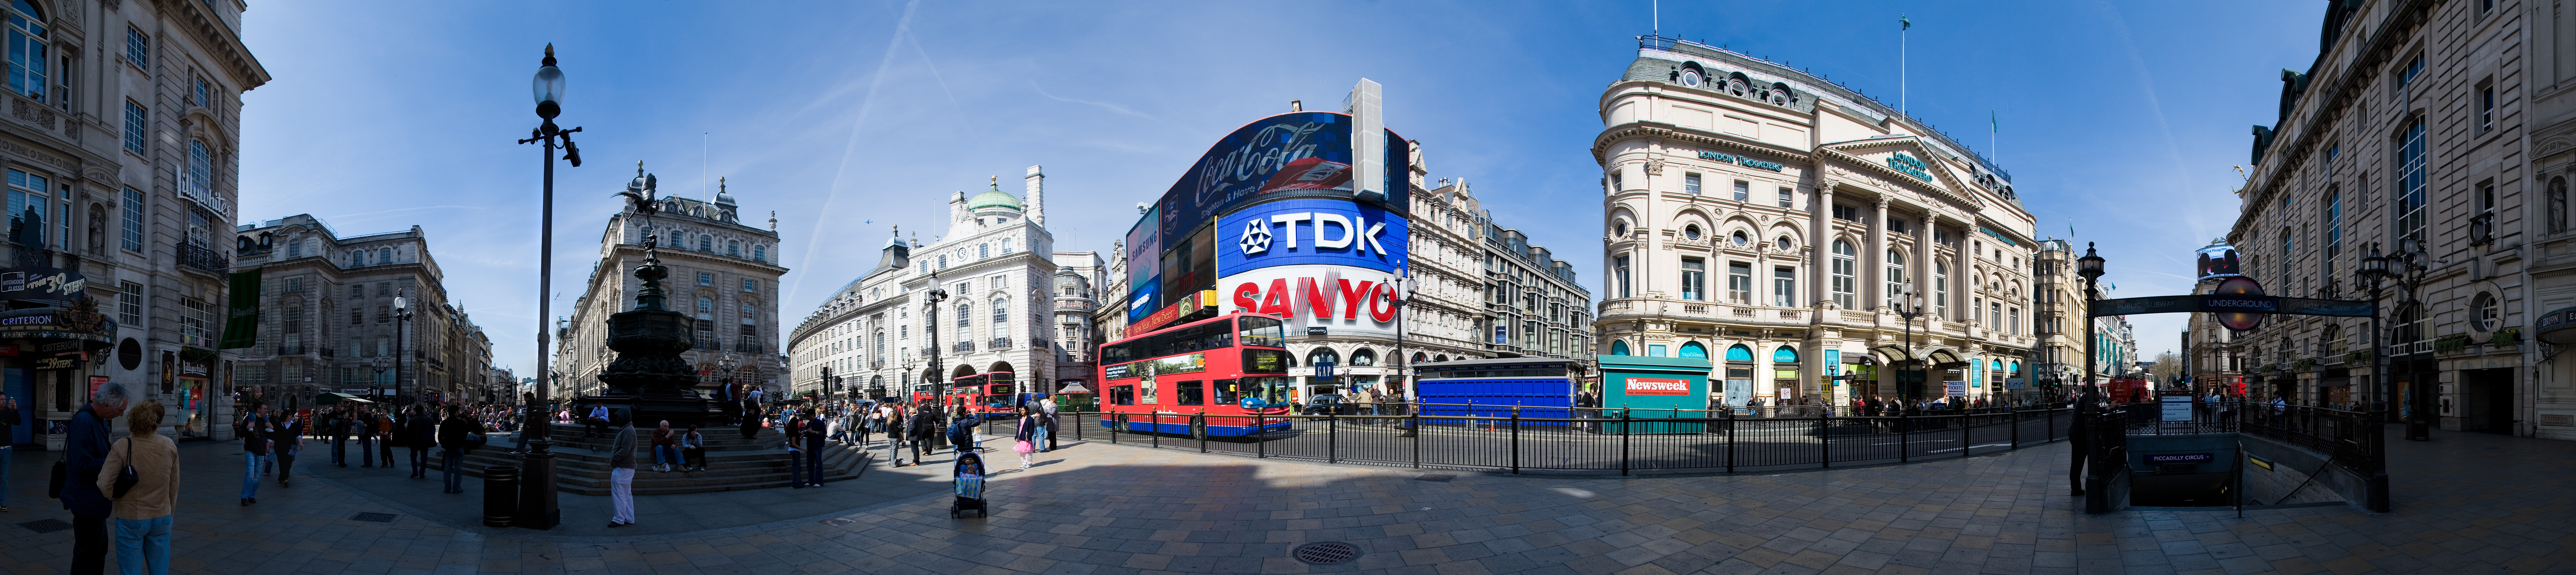 Piccadilly Circus and Trafalgar Square